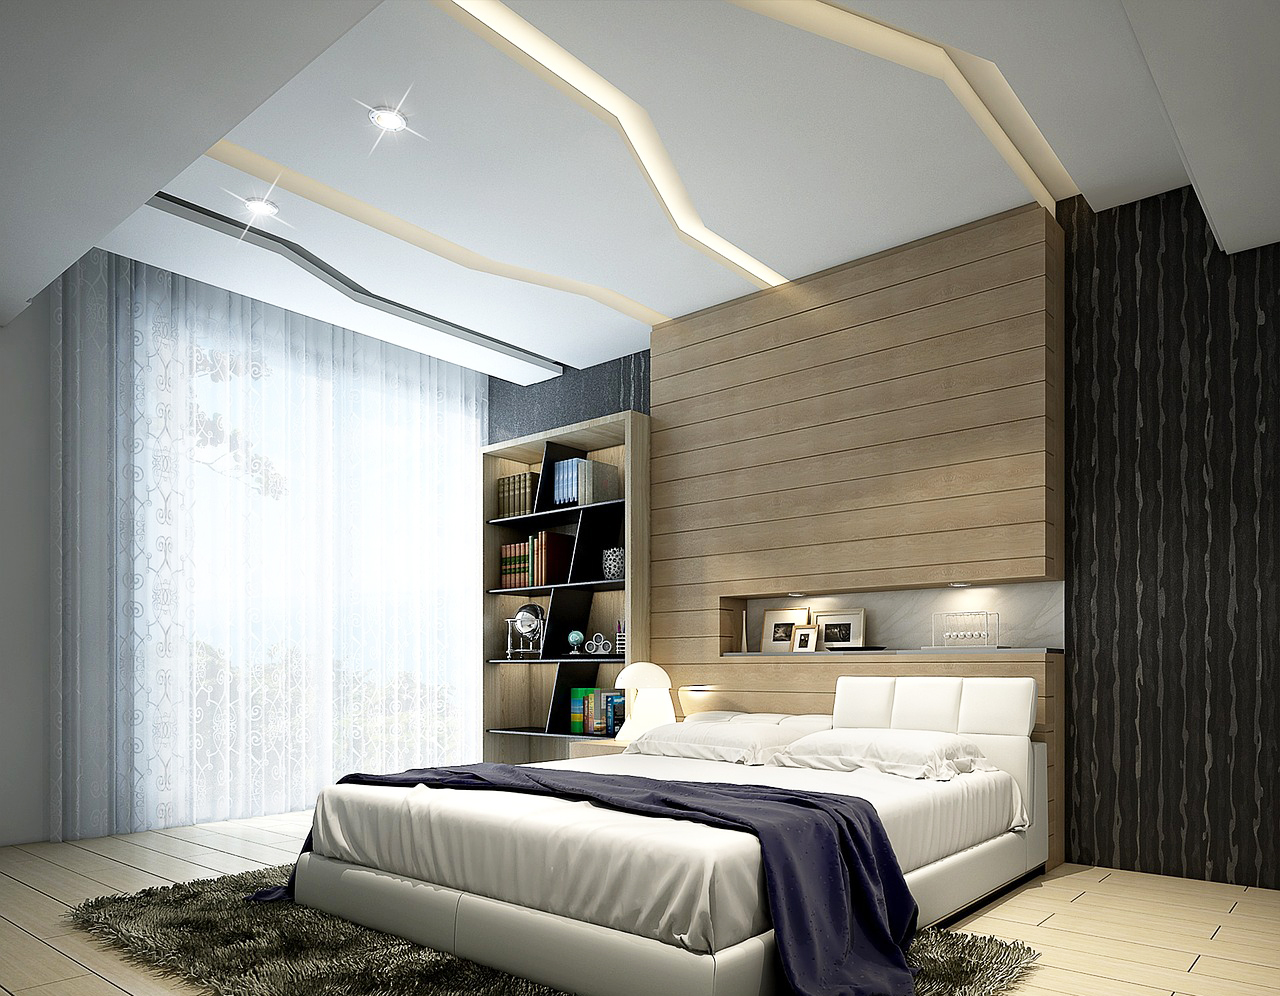 Bedroom Ceiling Design U2013 Creative Choices And Features With Ceiling Ideas  For Simple Bedroom Design And Modern Ceiling Decoration Ideas